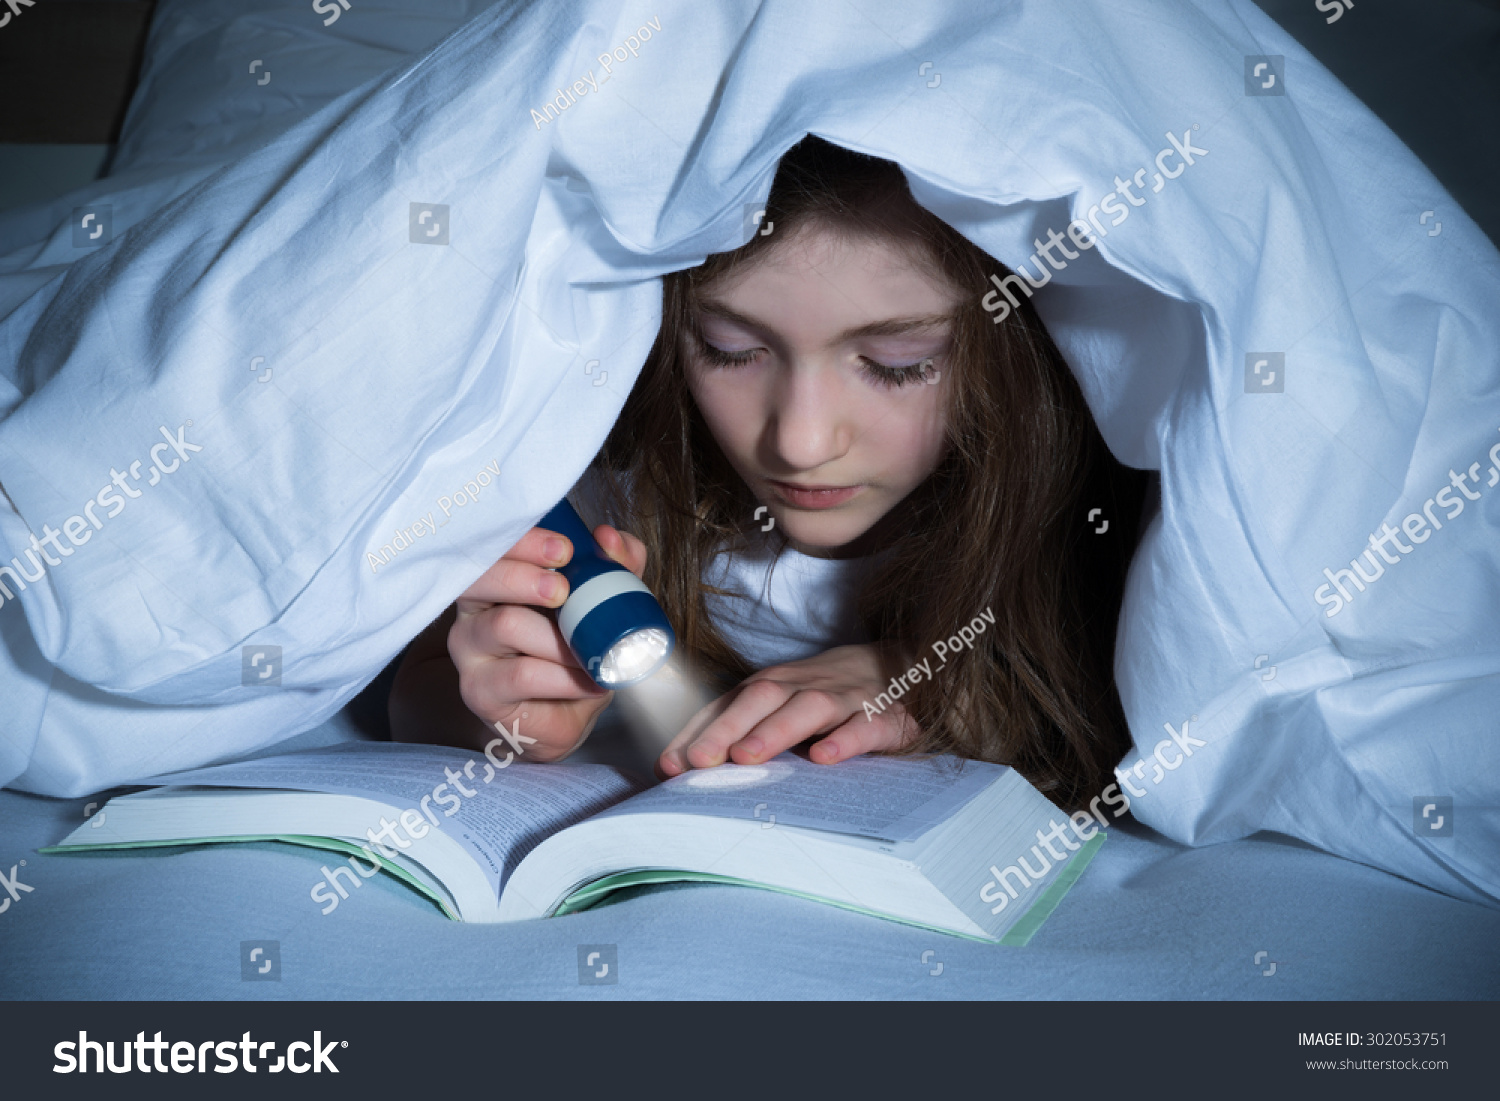 Girl reading book flashlight under blanket stock photo royalty free girl reading book with flashlight under the blanket on bed sciox Gallery